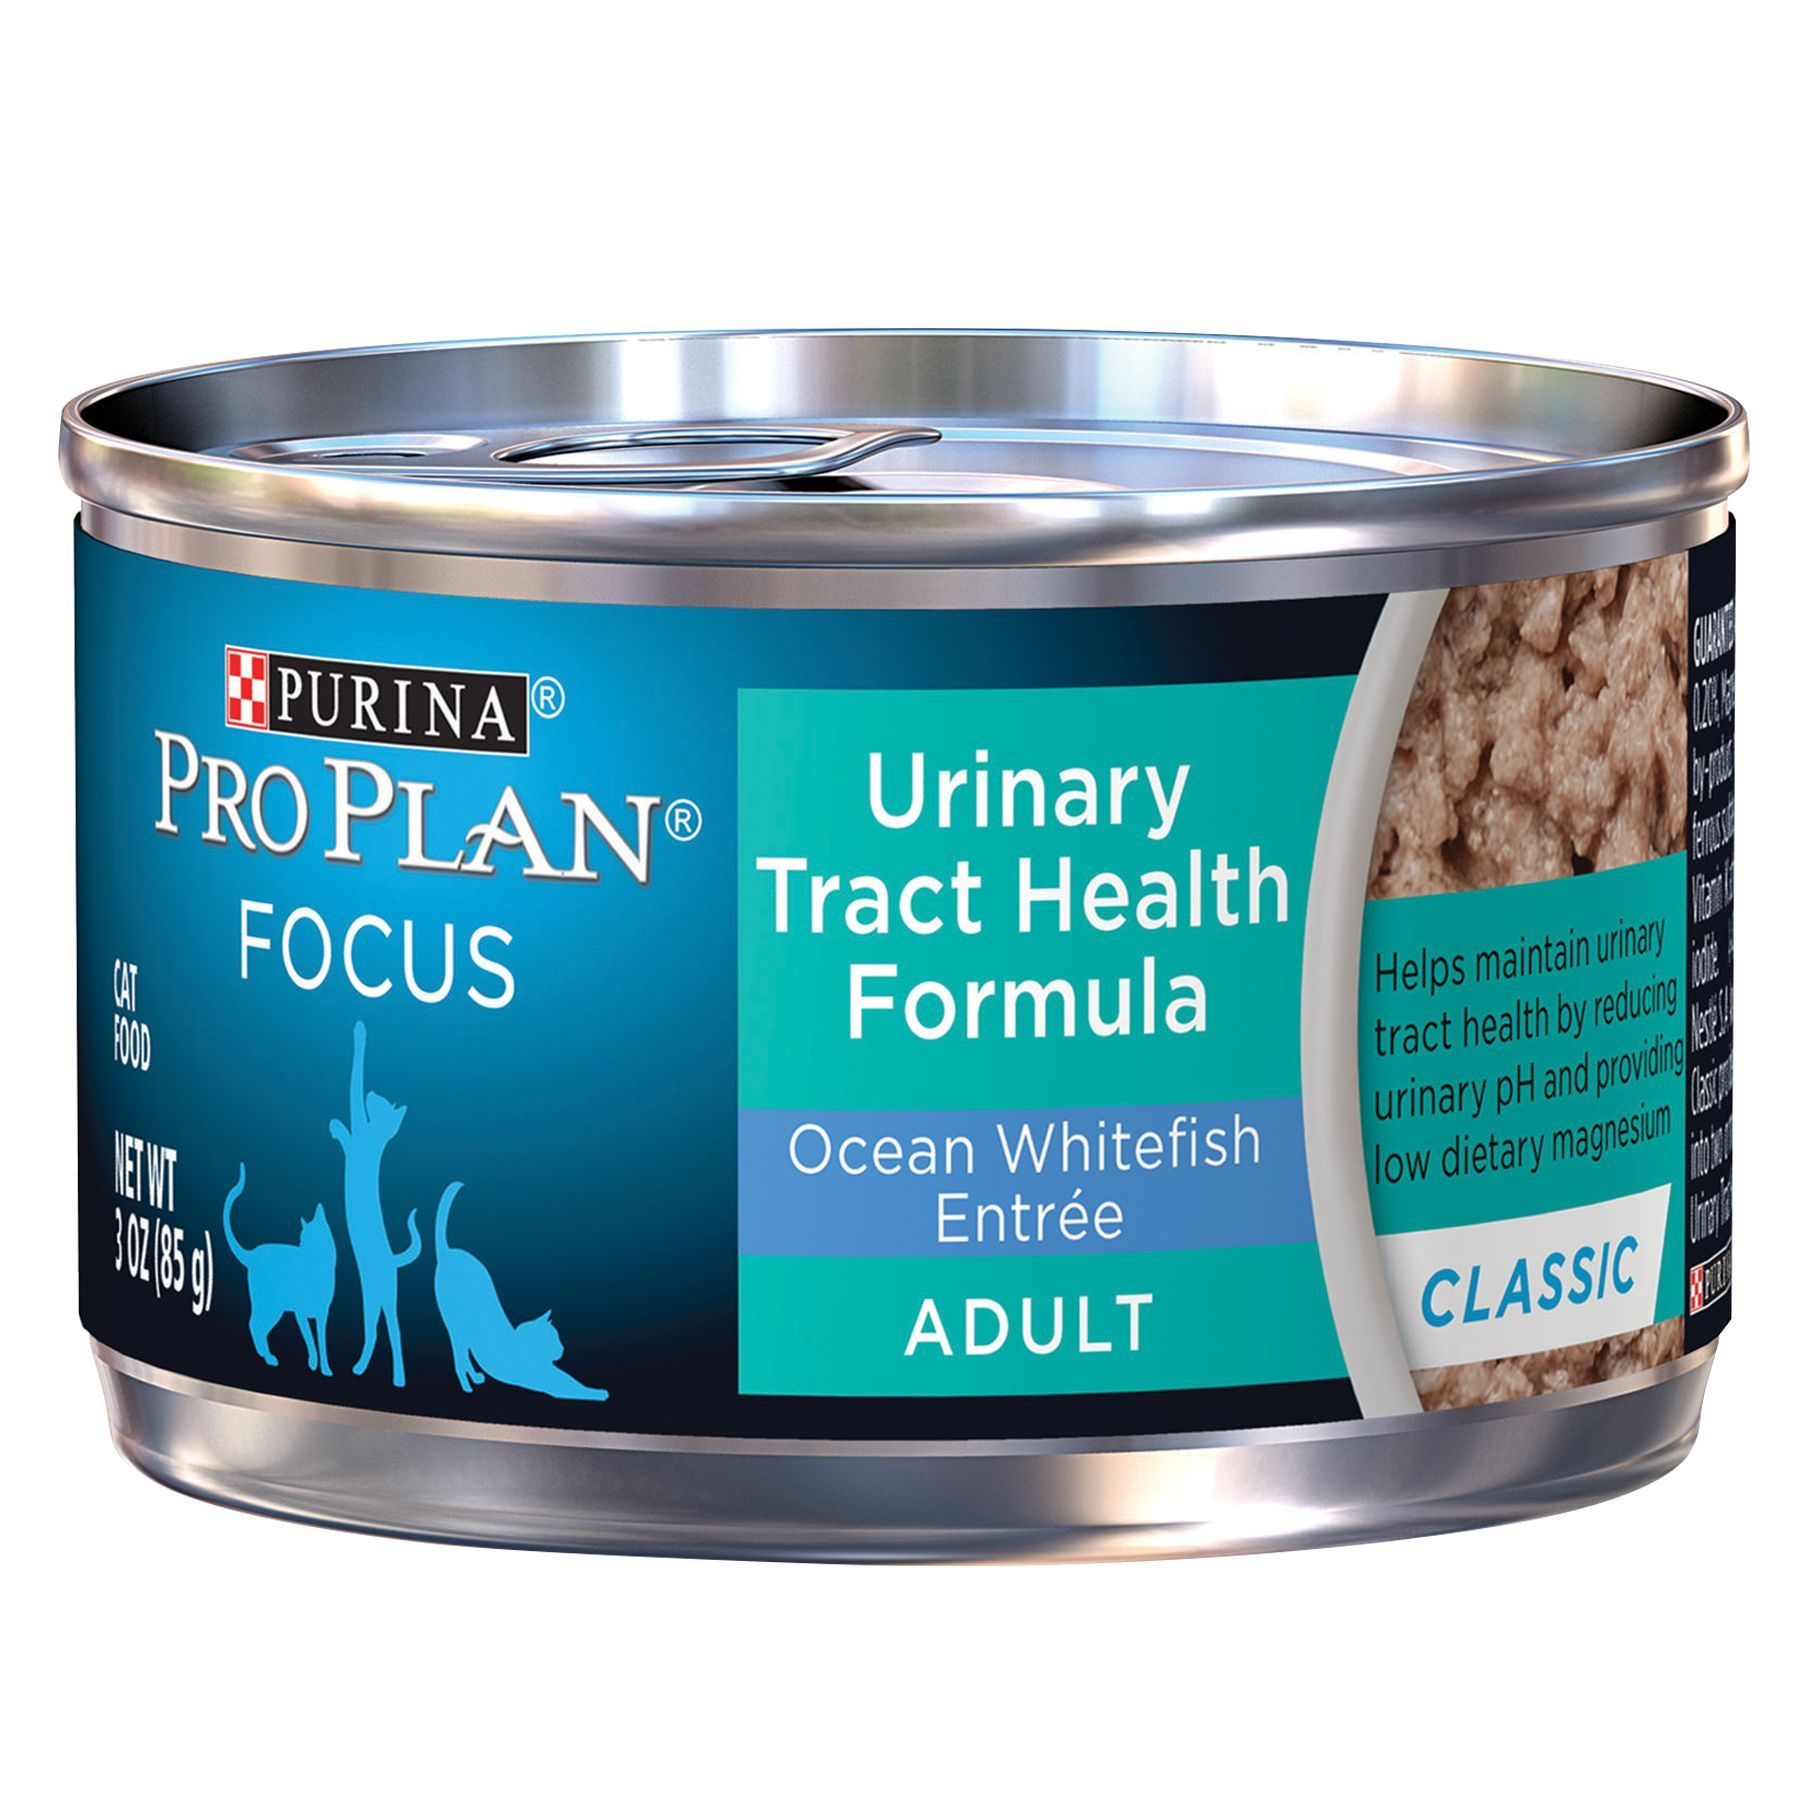 Purina Pro Plan Focus Adult Cat Food Urinary Tract